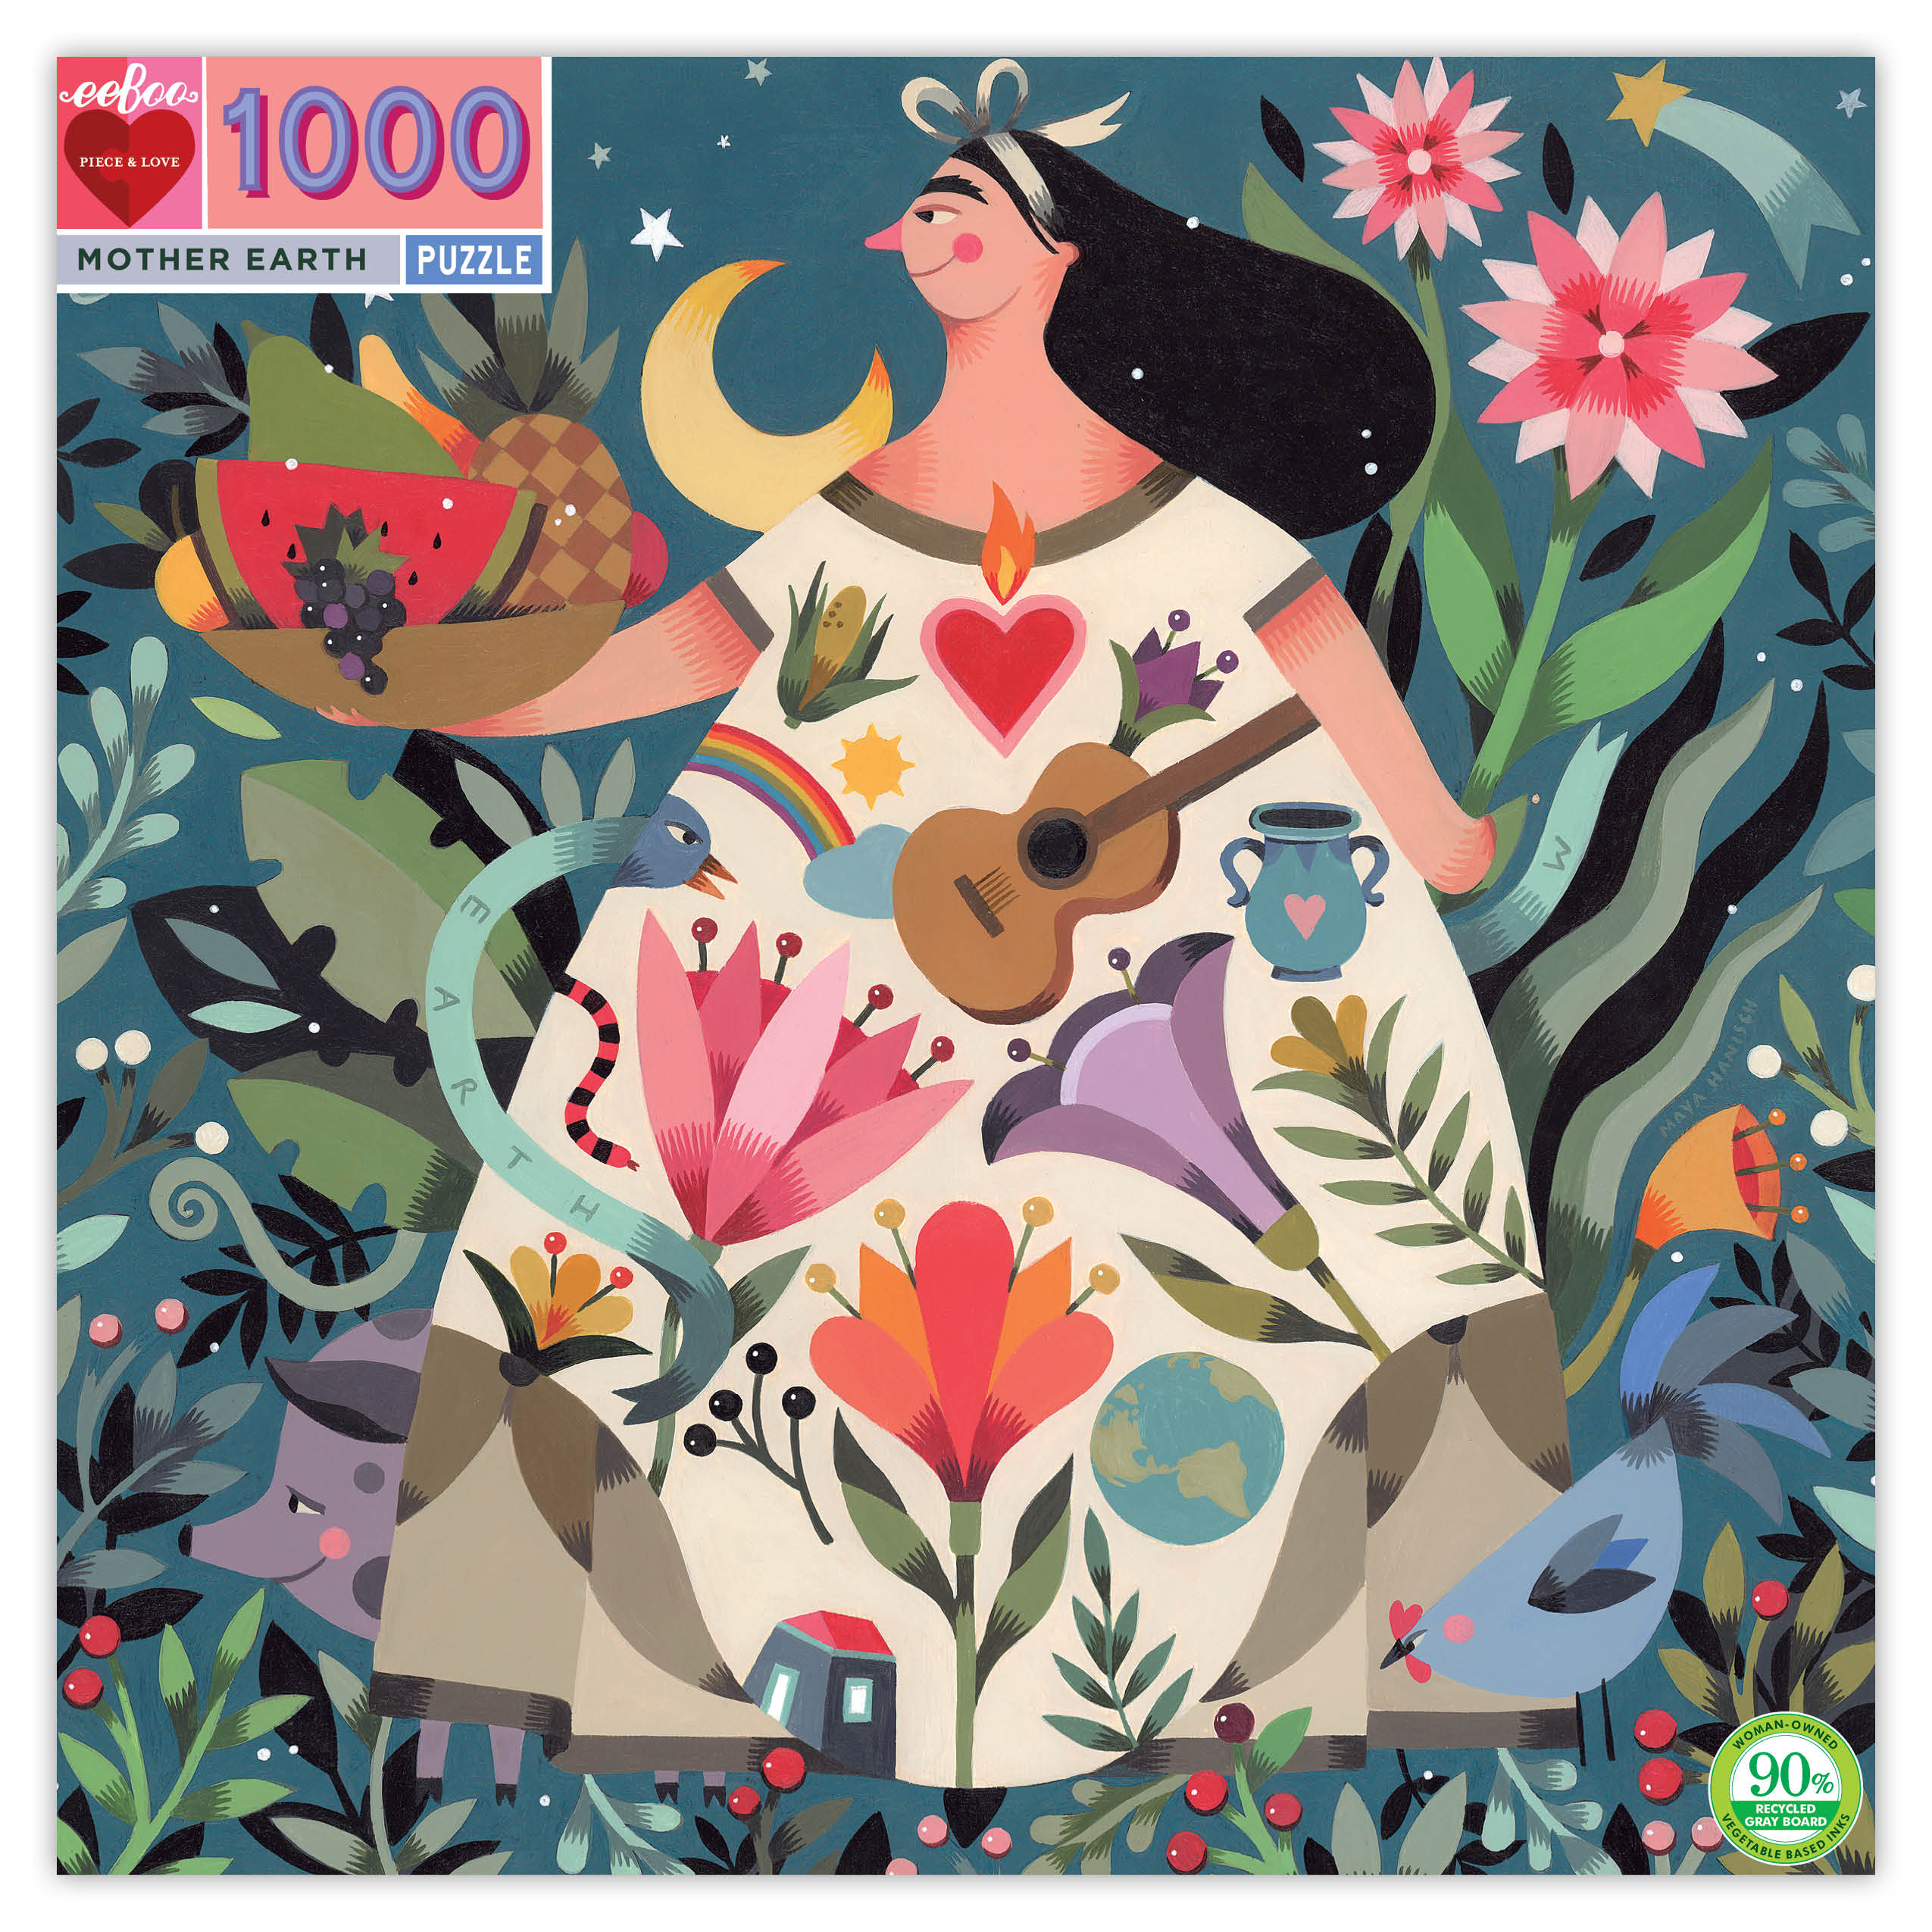 Mother Earth 1008 Piece Puzzle